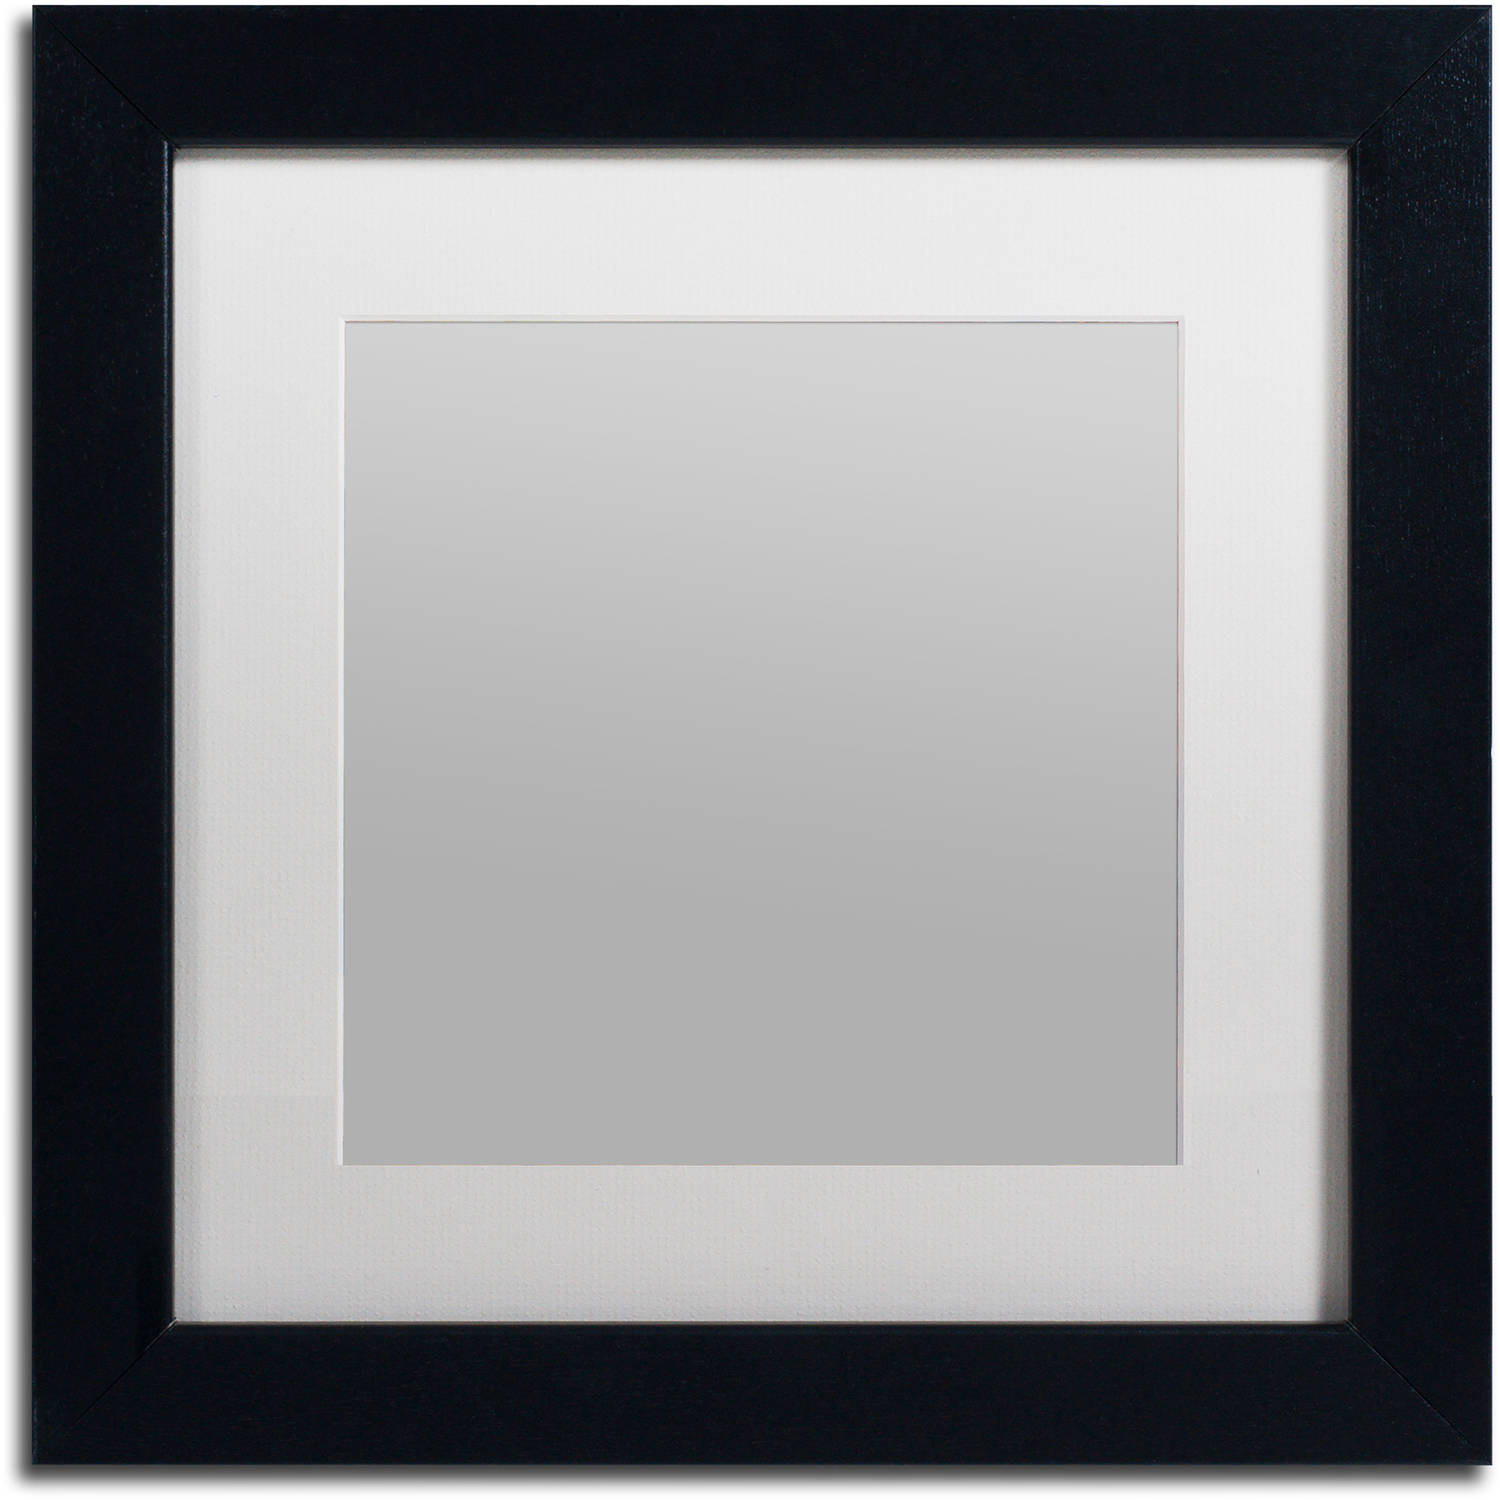 Trademark Fine Art Heavy-Duty 11x11 Black Picture Frame with 7x7 White Mat